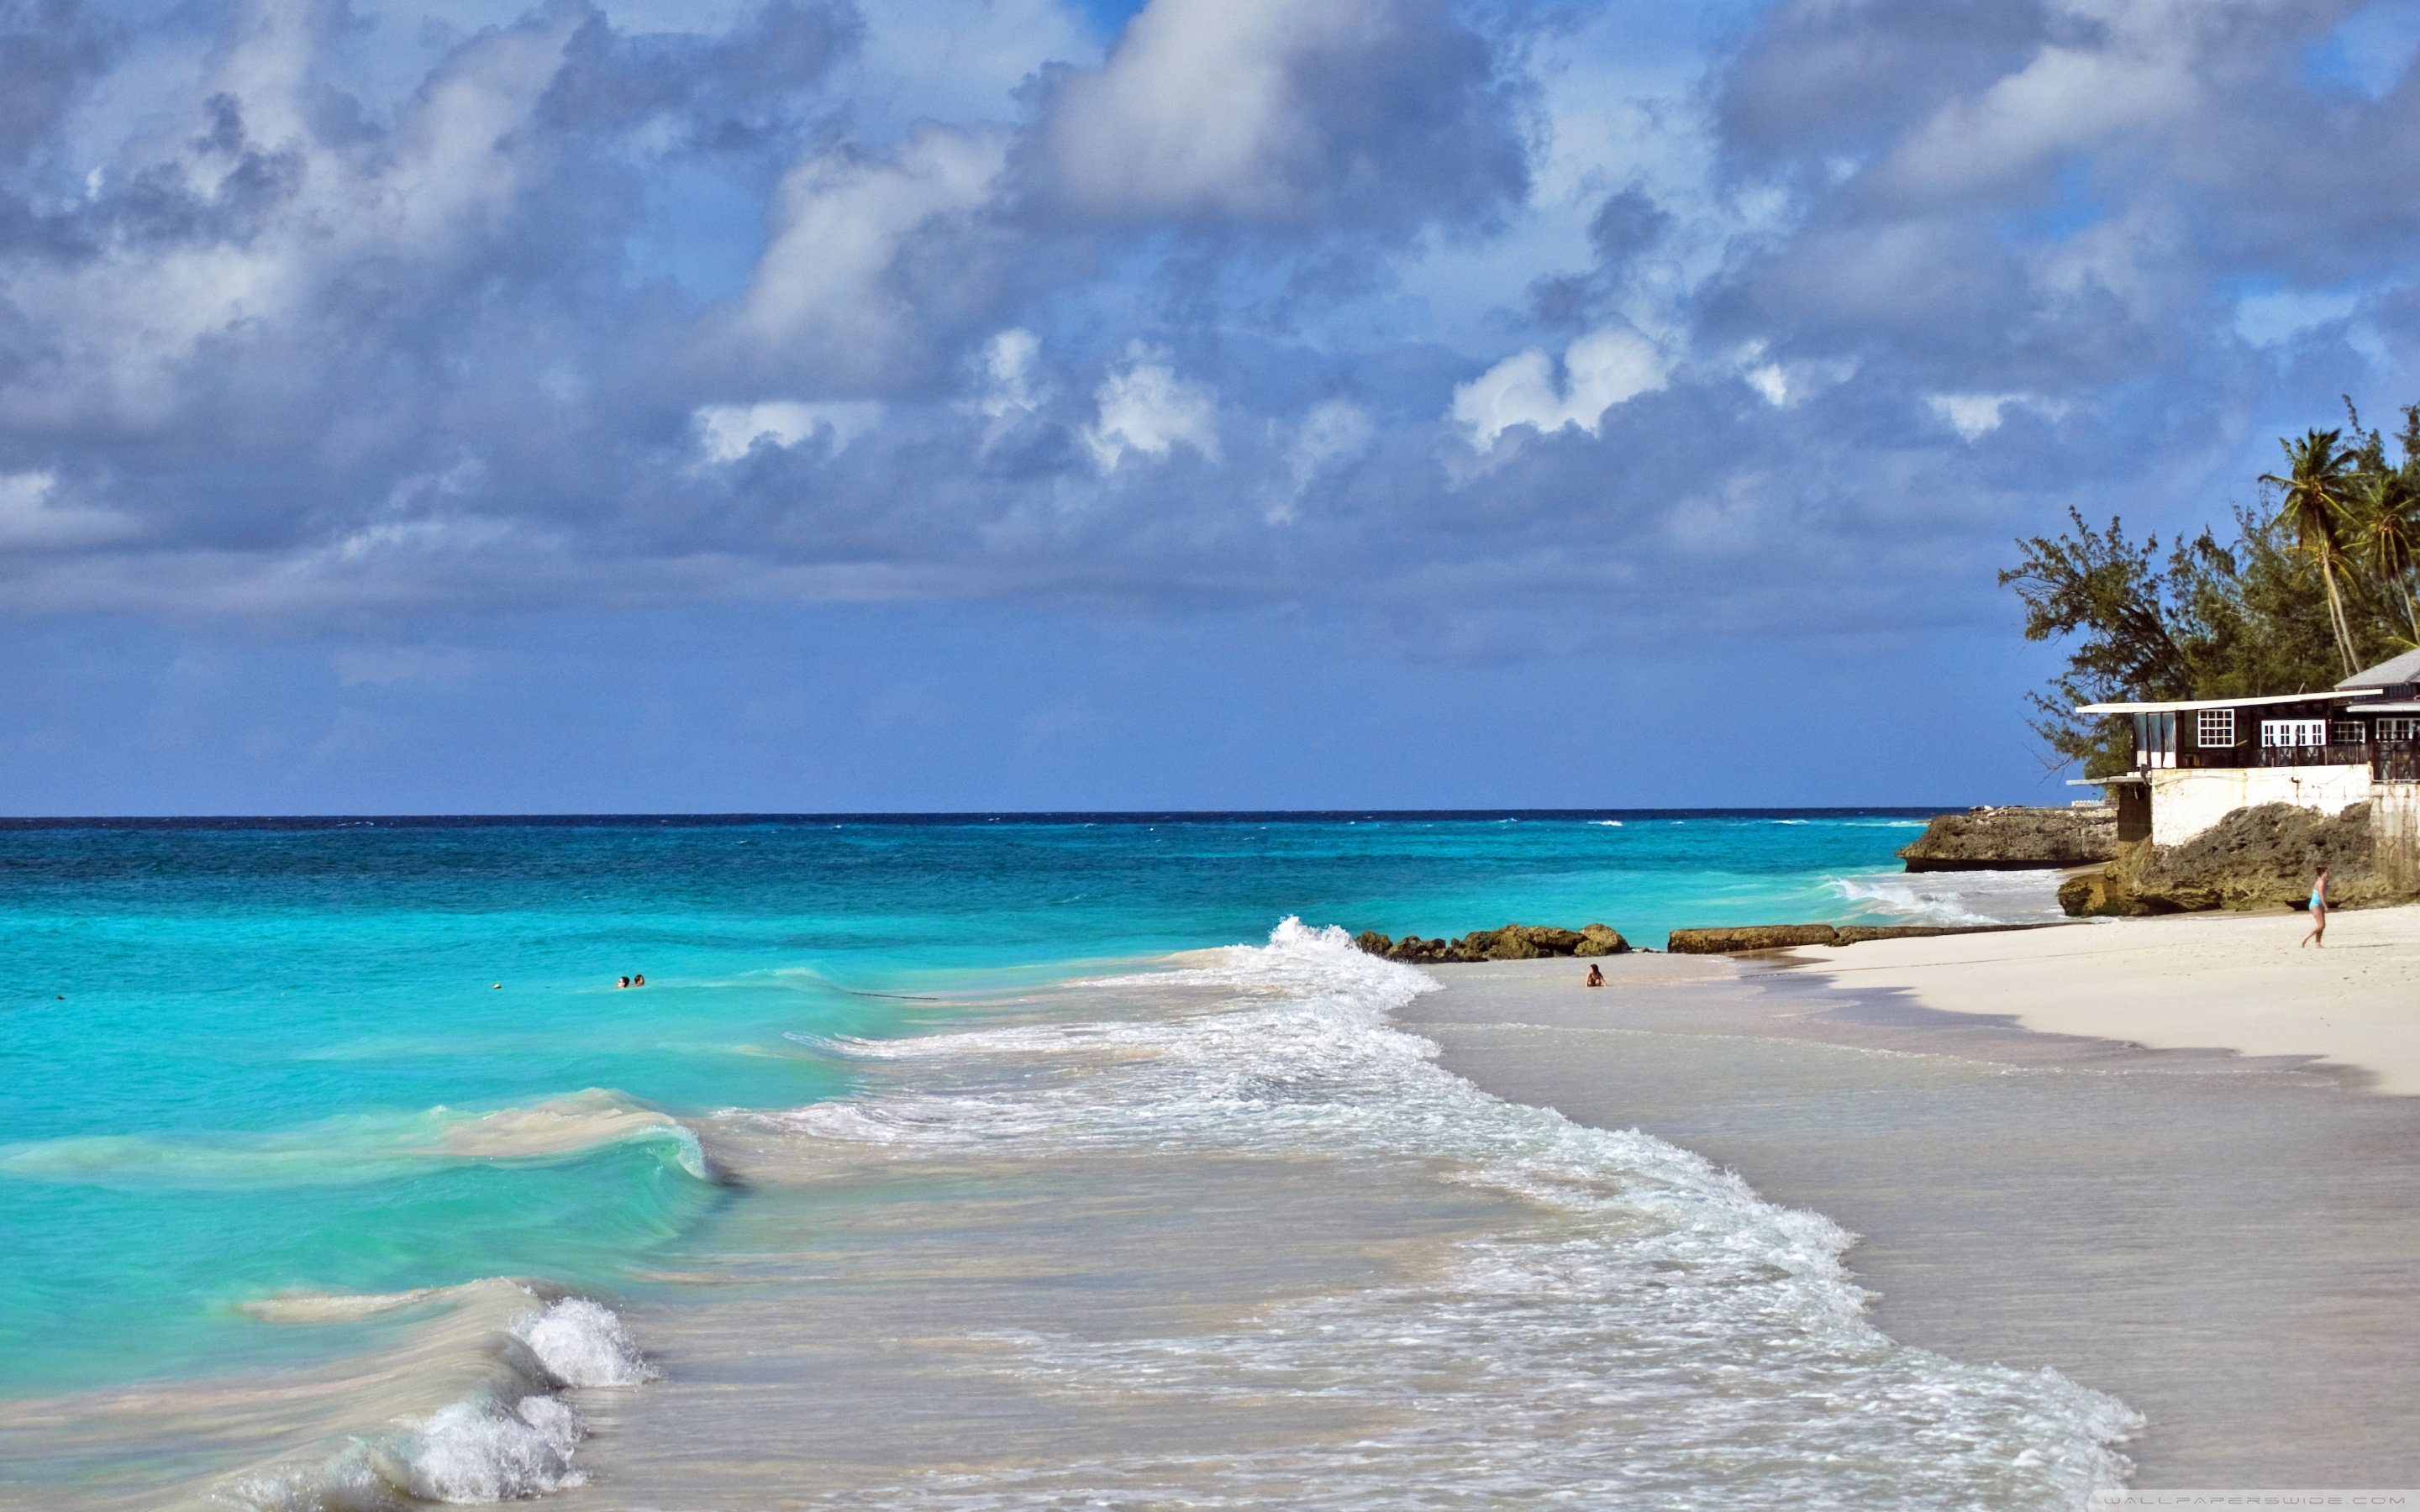 Barbados Beach 4K HD Desktop Wallpaper for 4K Ultra HD TV 2880x1800